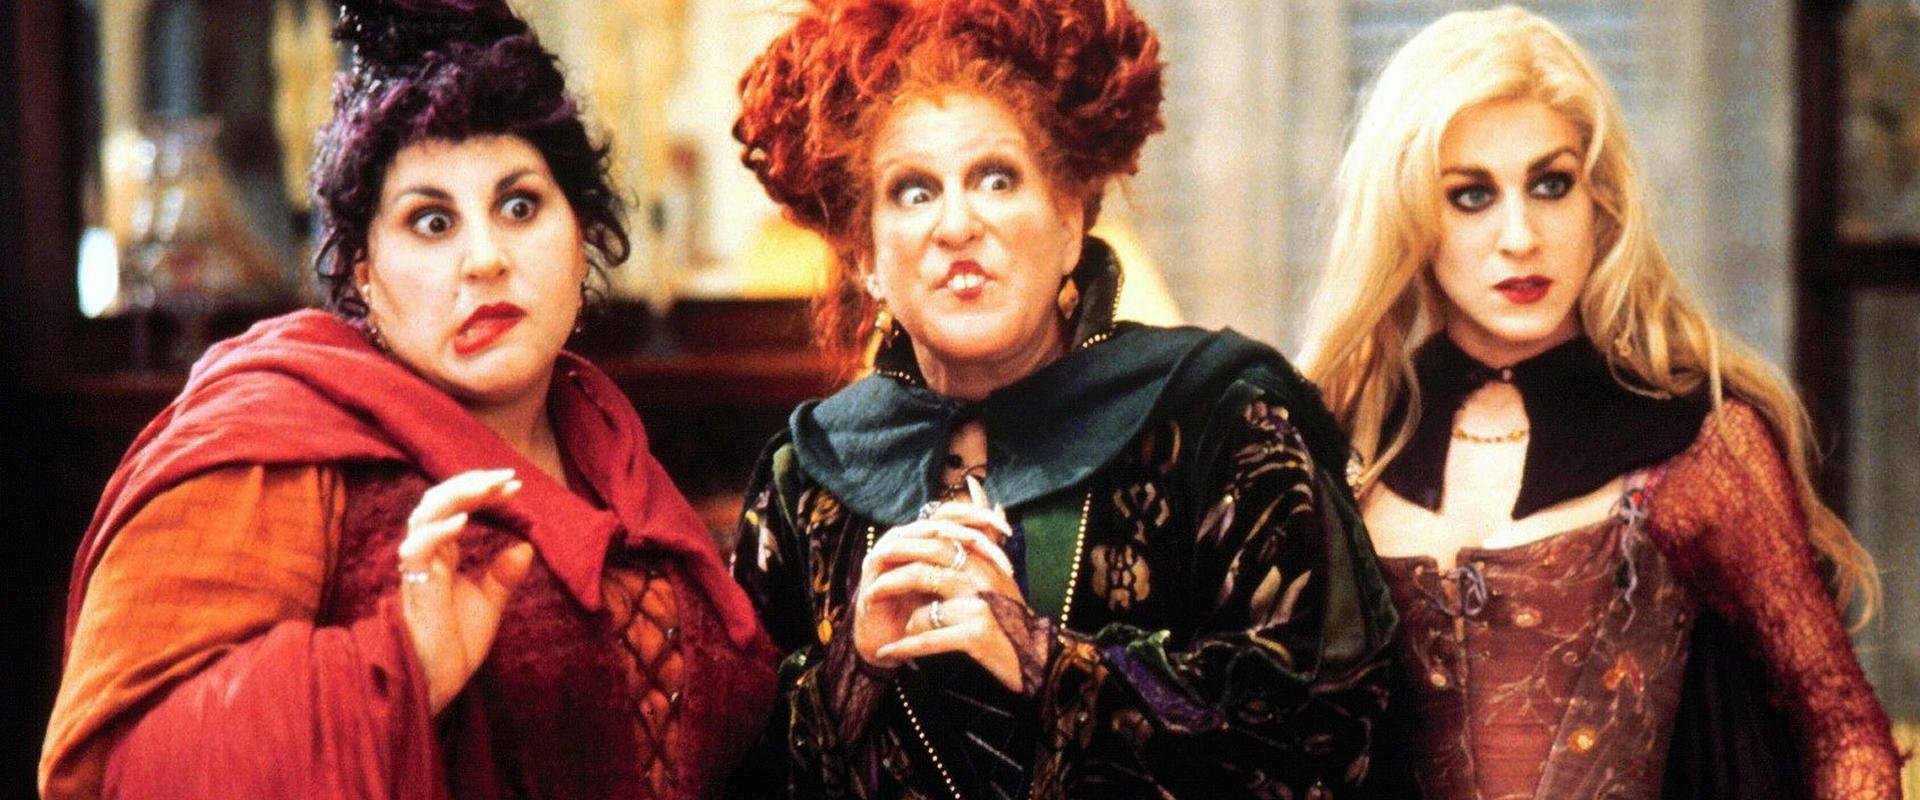 The witches of Hocus Pocus